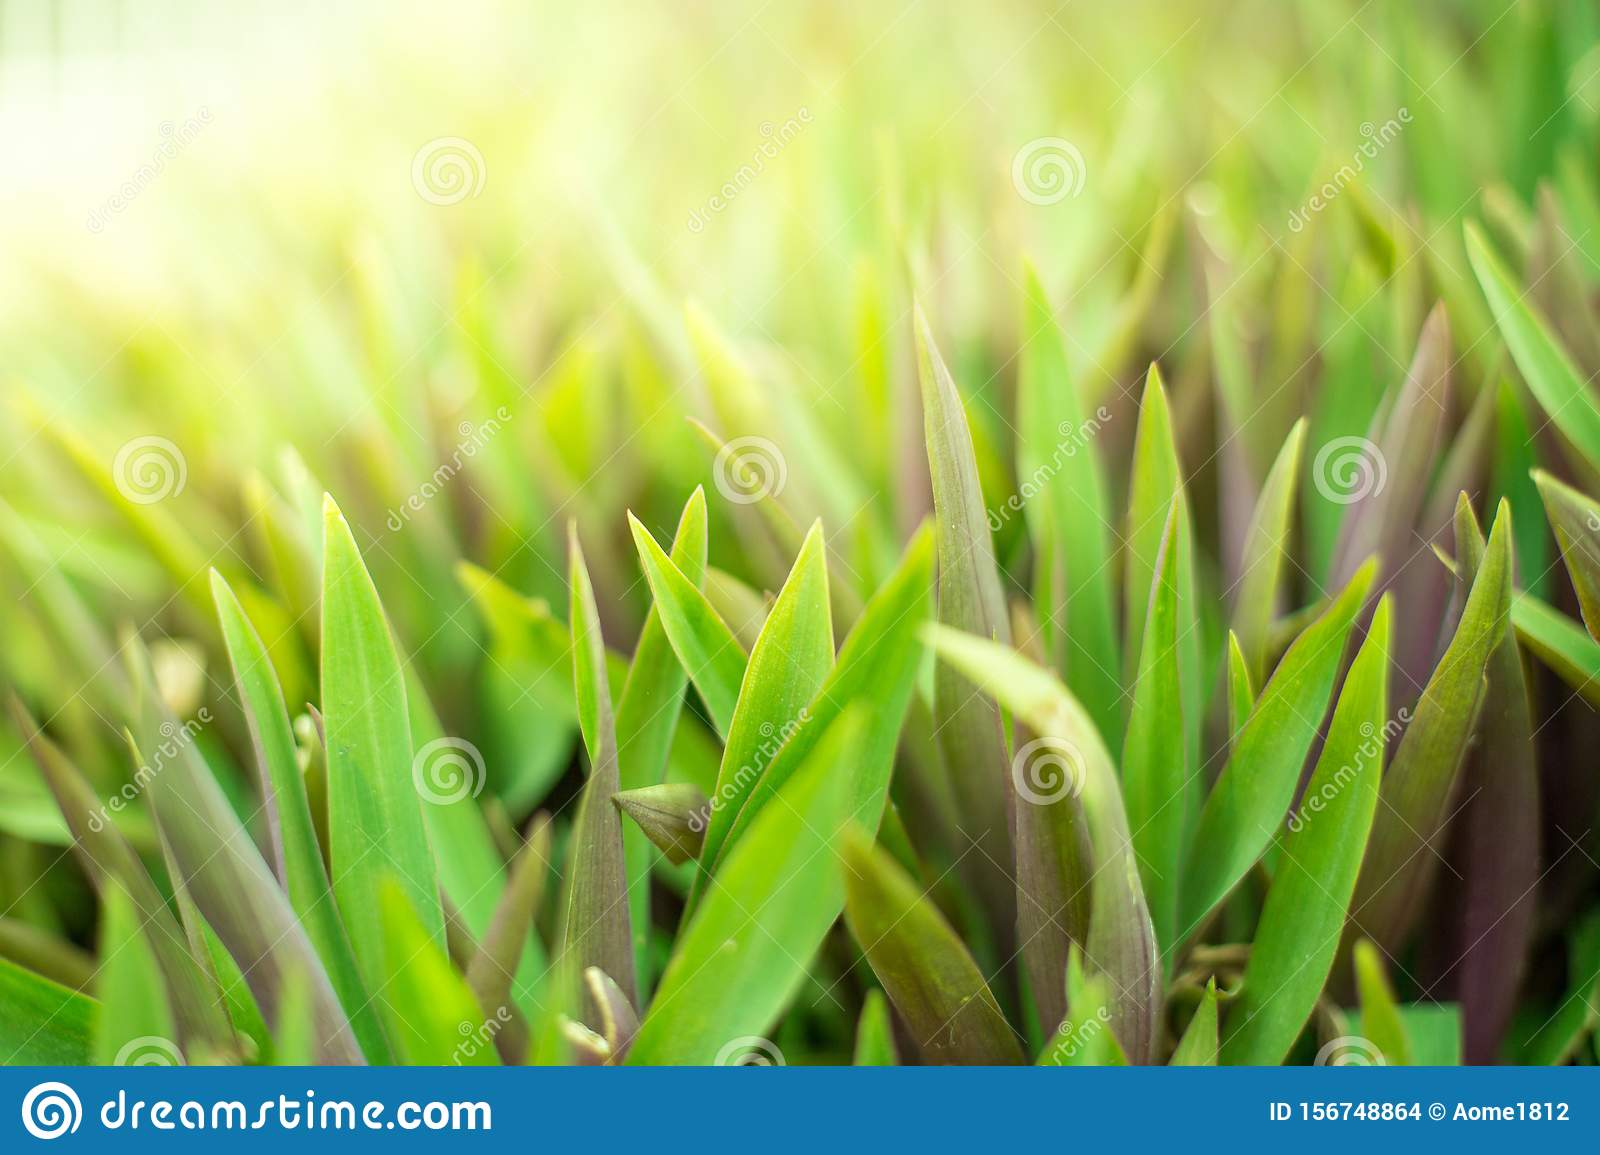 Green shrubs With sunlight on background blurred